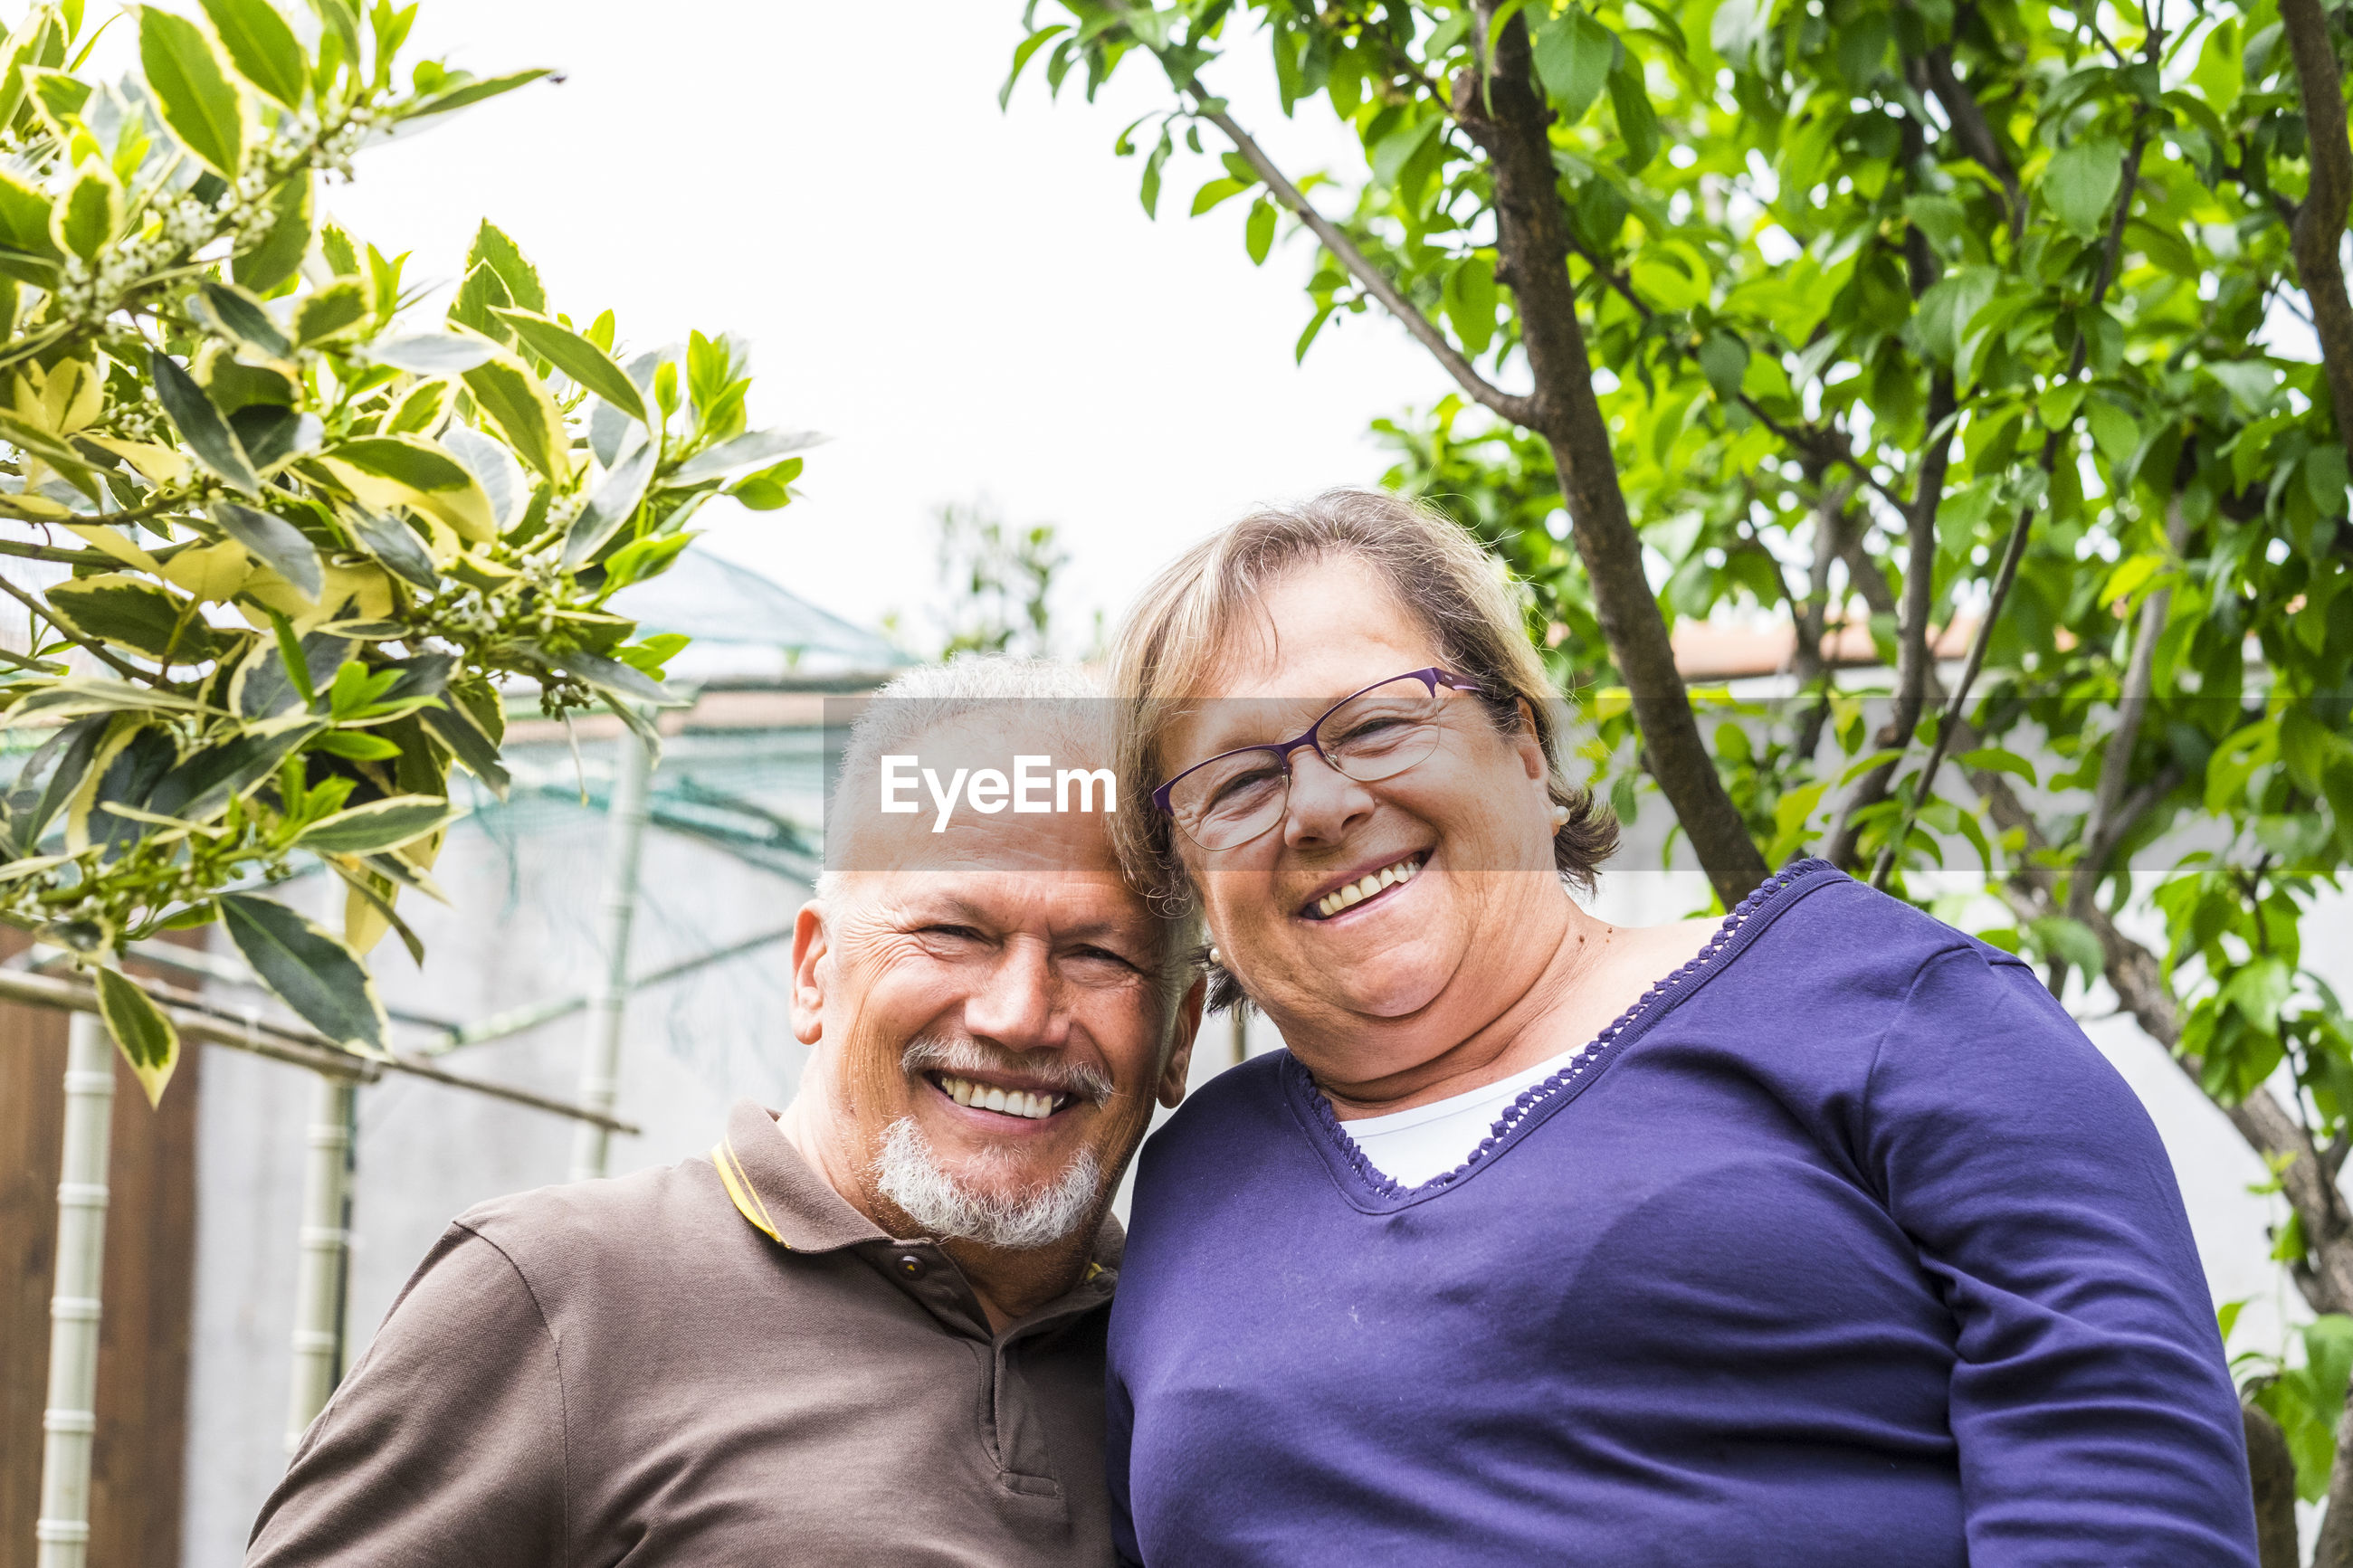 Portrait of smiling man and woman standing by trees in yard